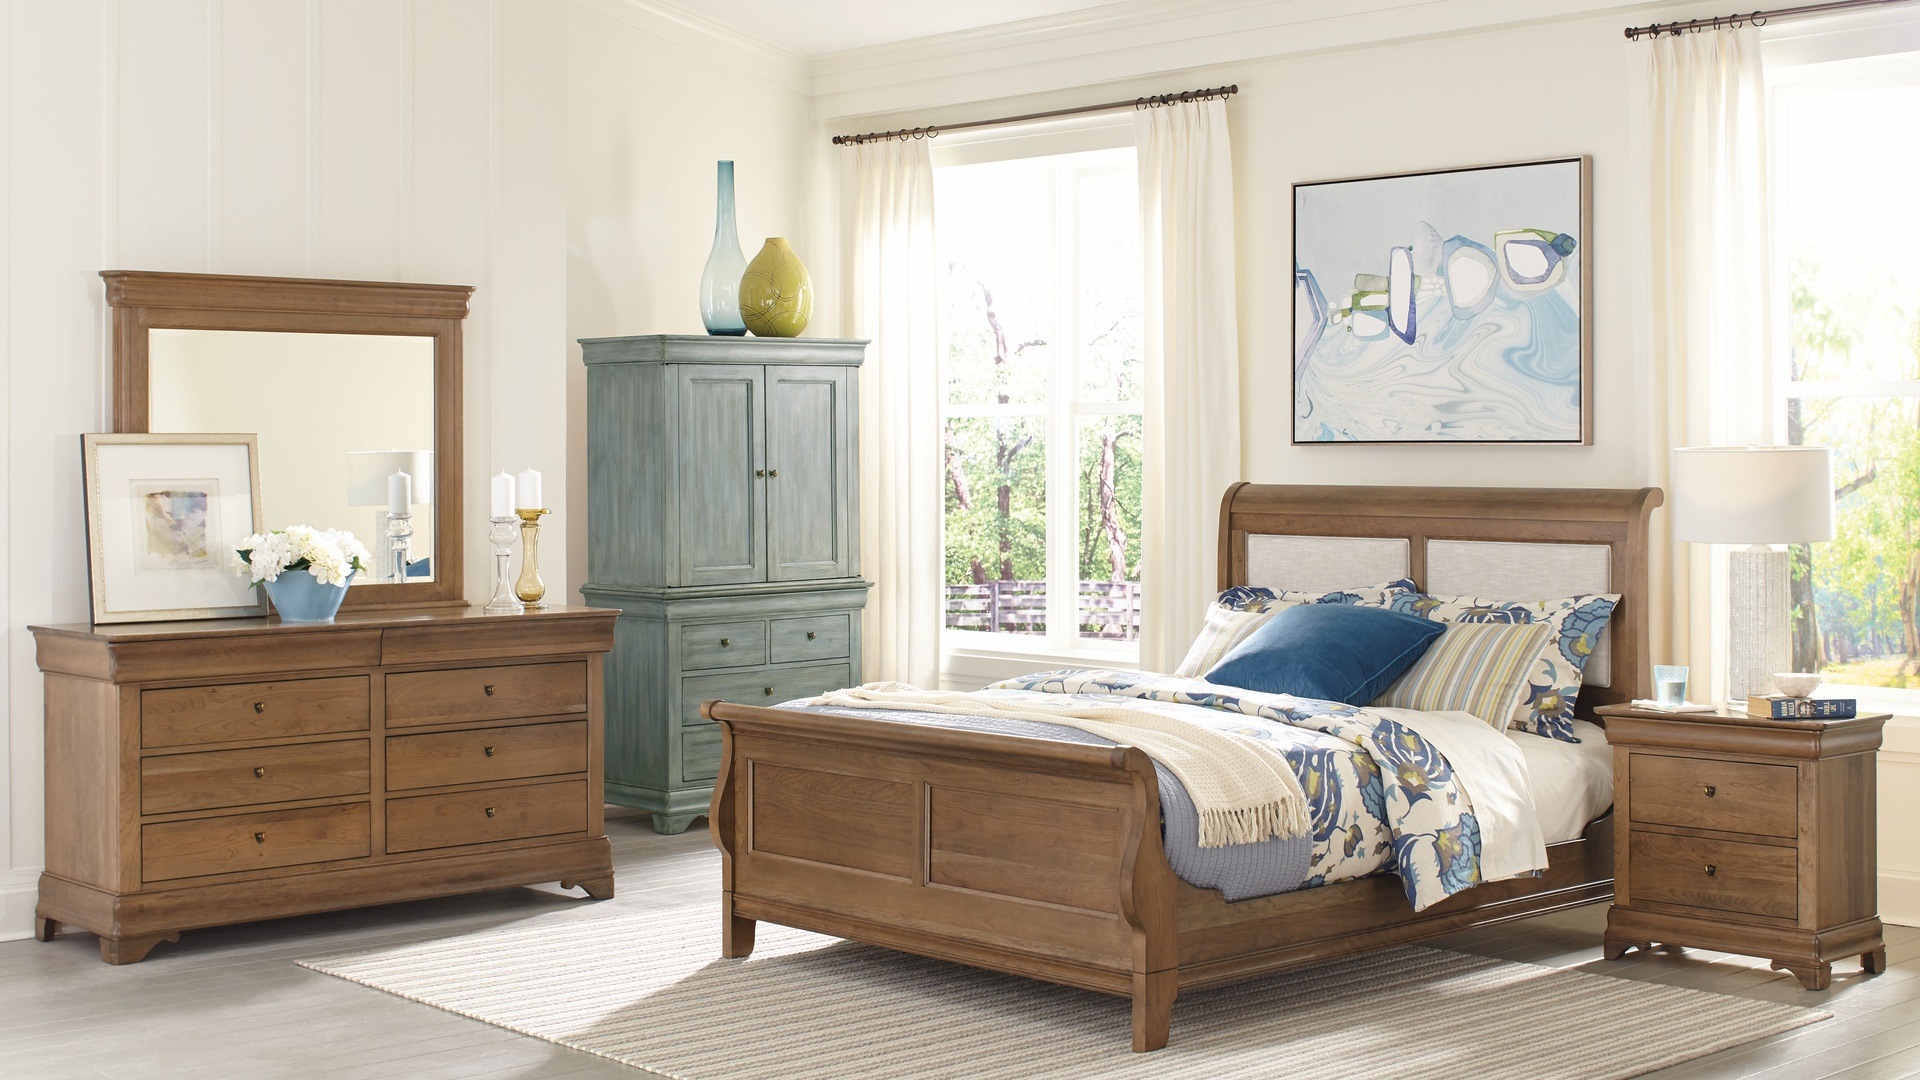 Solid Wood. Timeless Style. Since 11.  Durham Furniture